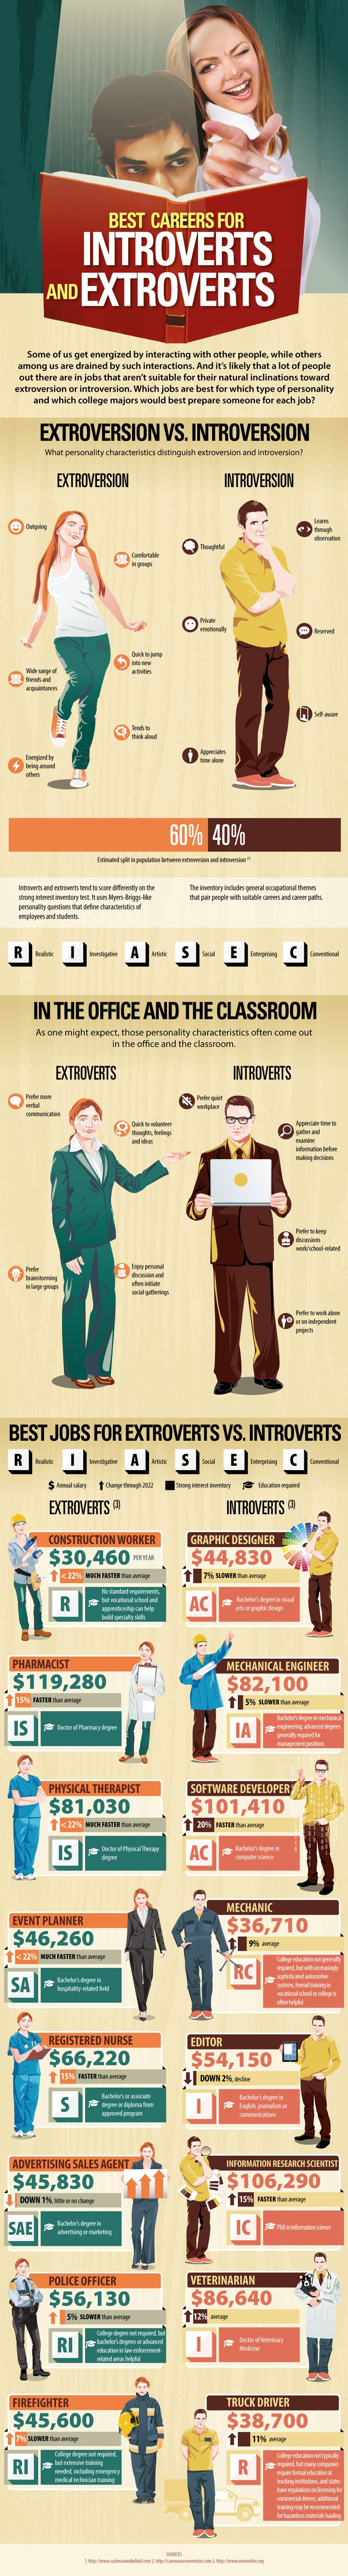 17 best ideas about career assessment career introverted versus extroverted personalities interest inventory career infographic careerassessmentsite com